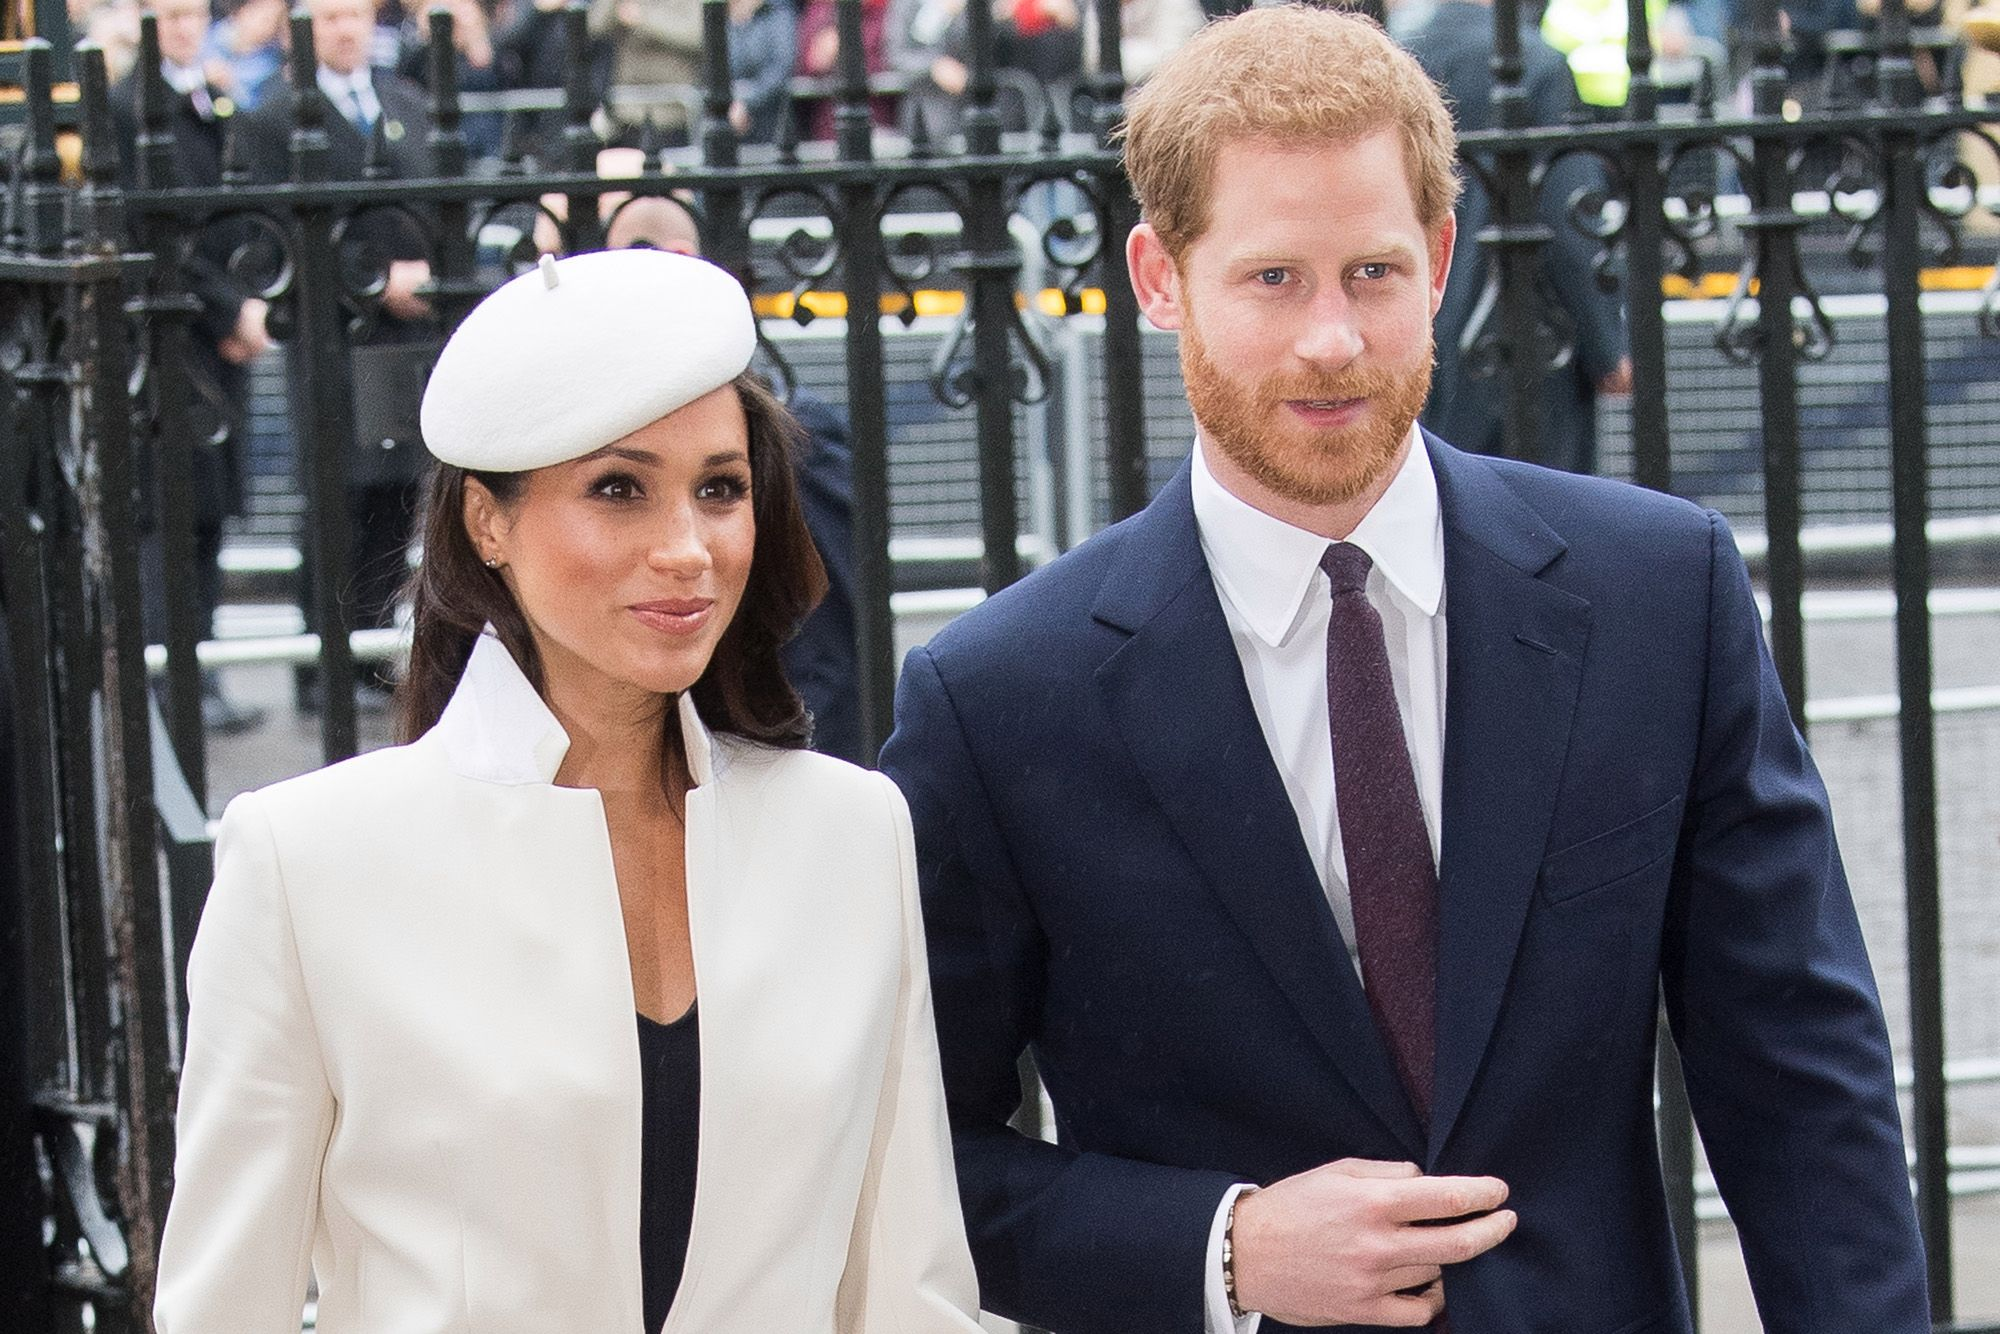 Prince Harry And Meghan Markle Reportedly 'Looking Forward' To Spending The Holidays In California – Here's Why!